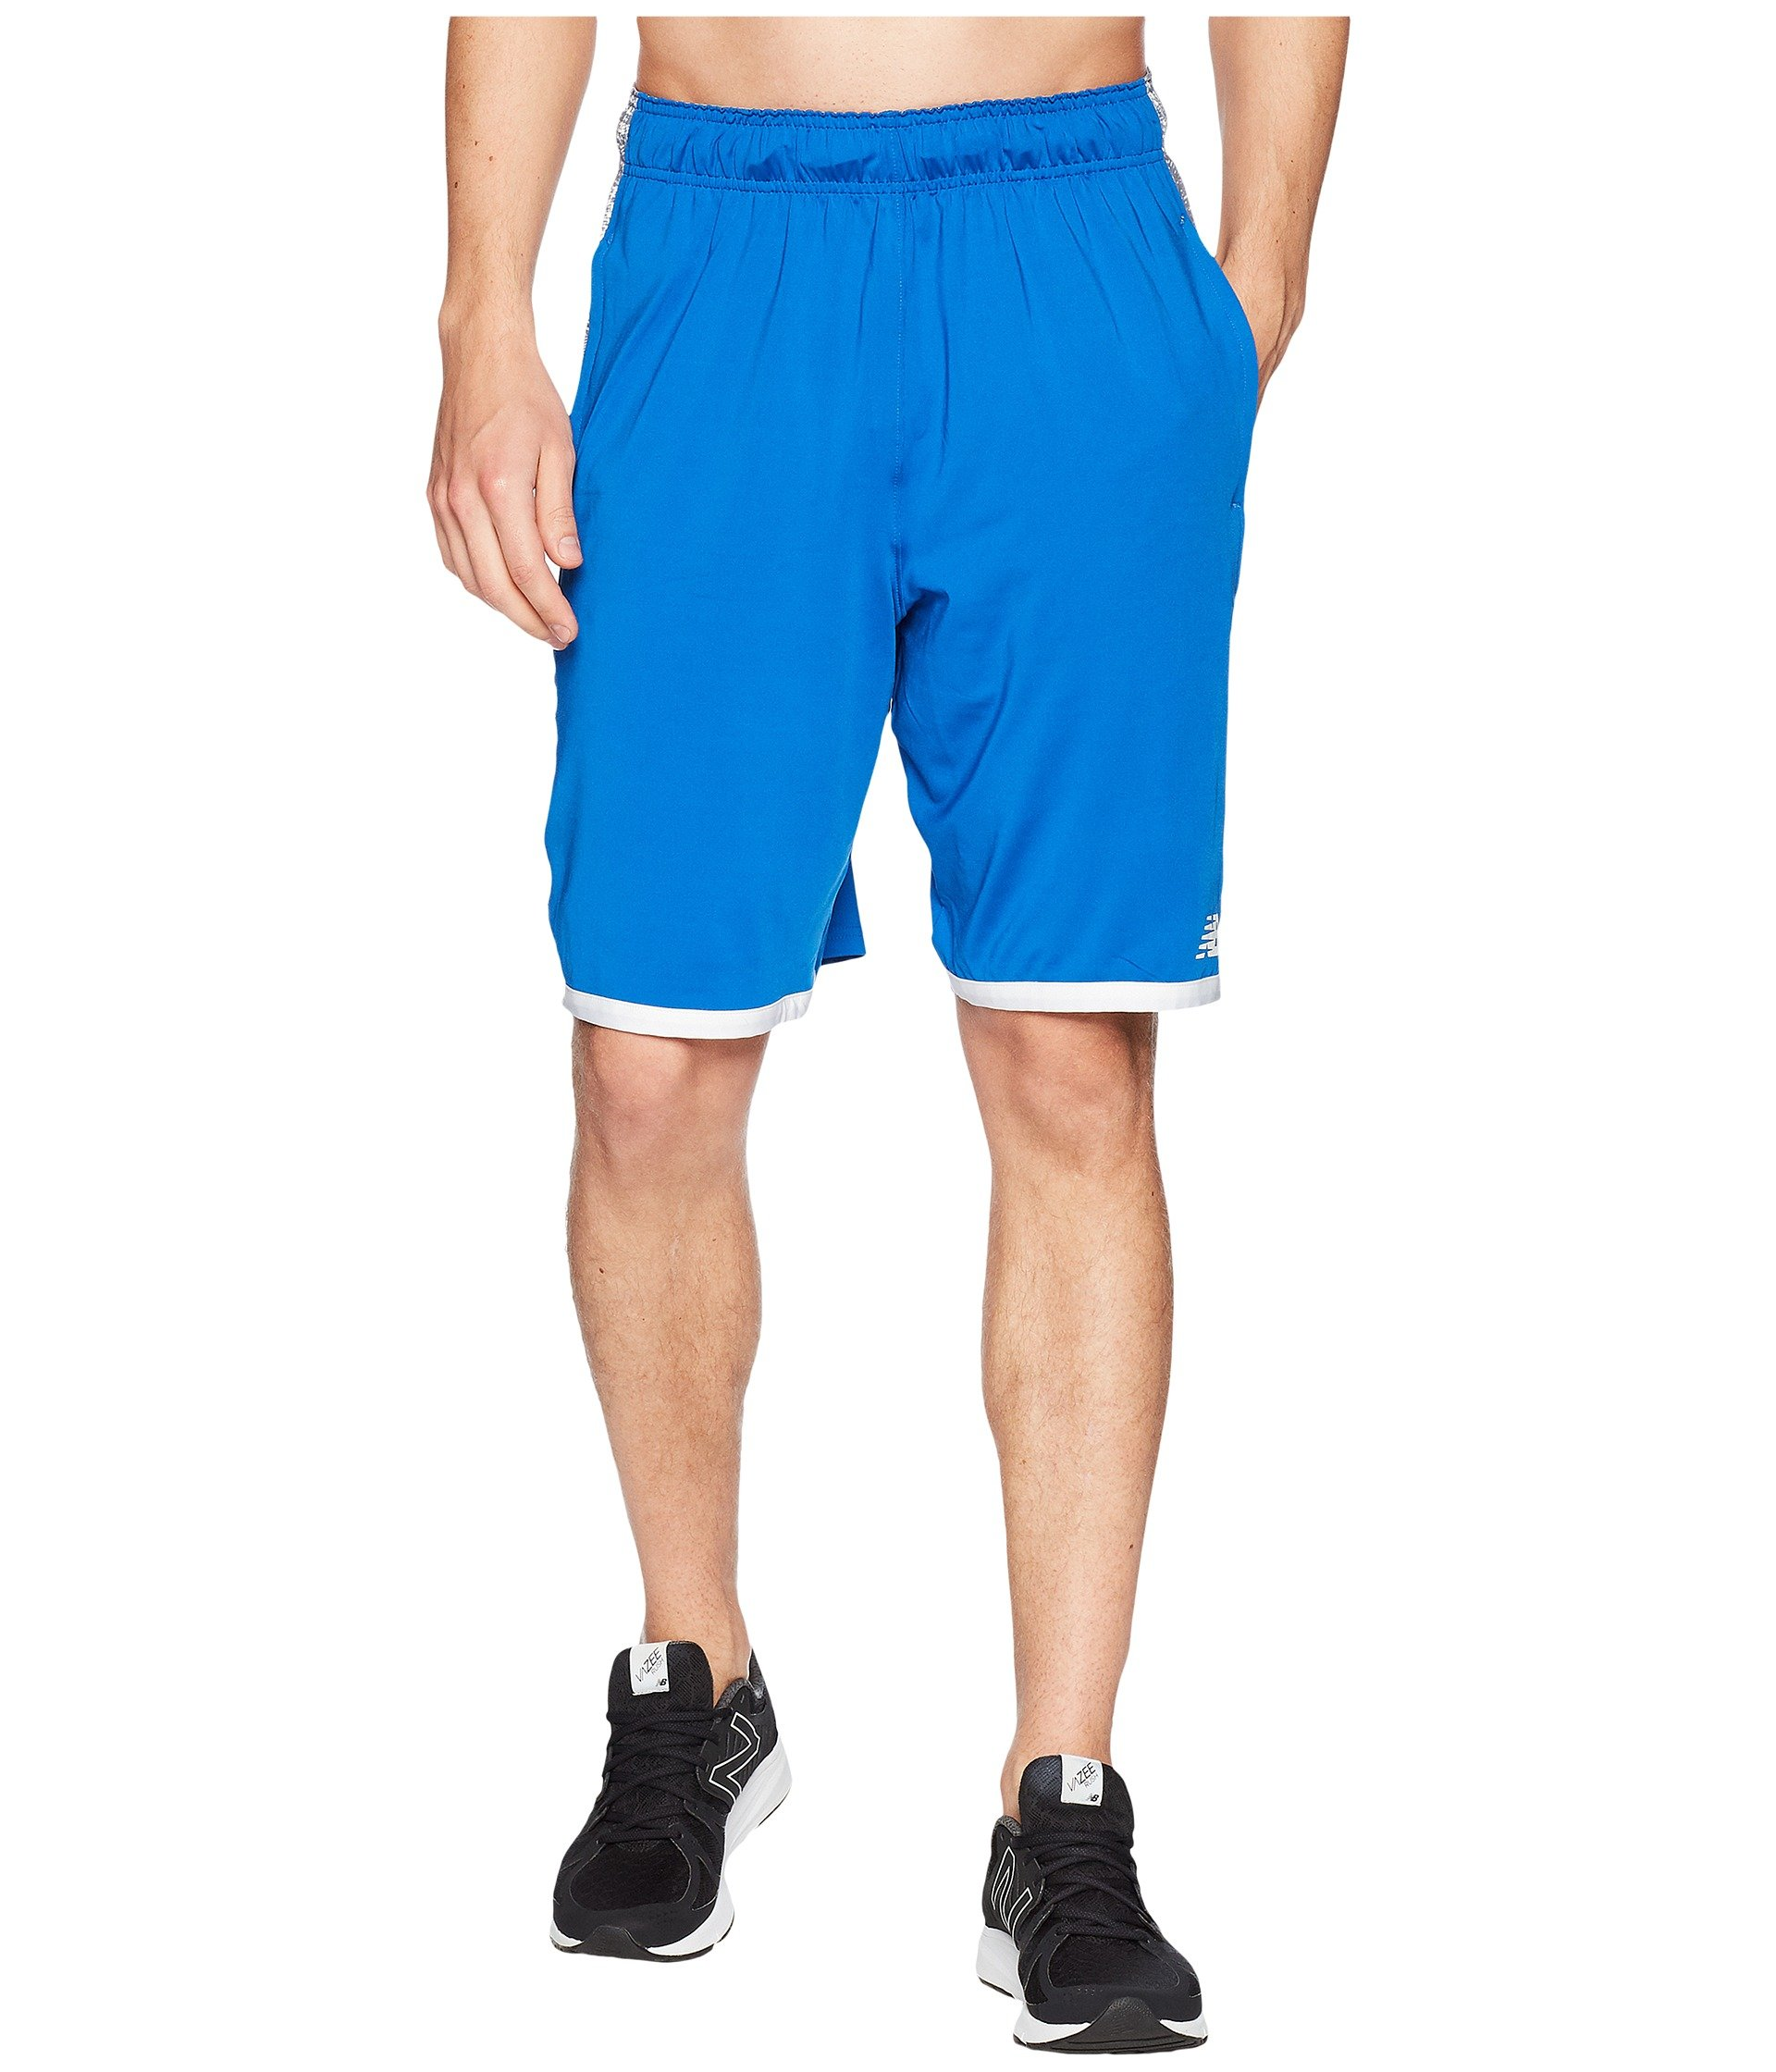 New Balance Men's Baseball Grind Inset Shorts, Team Royal, Small by New Balance